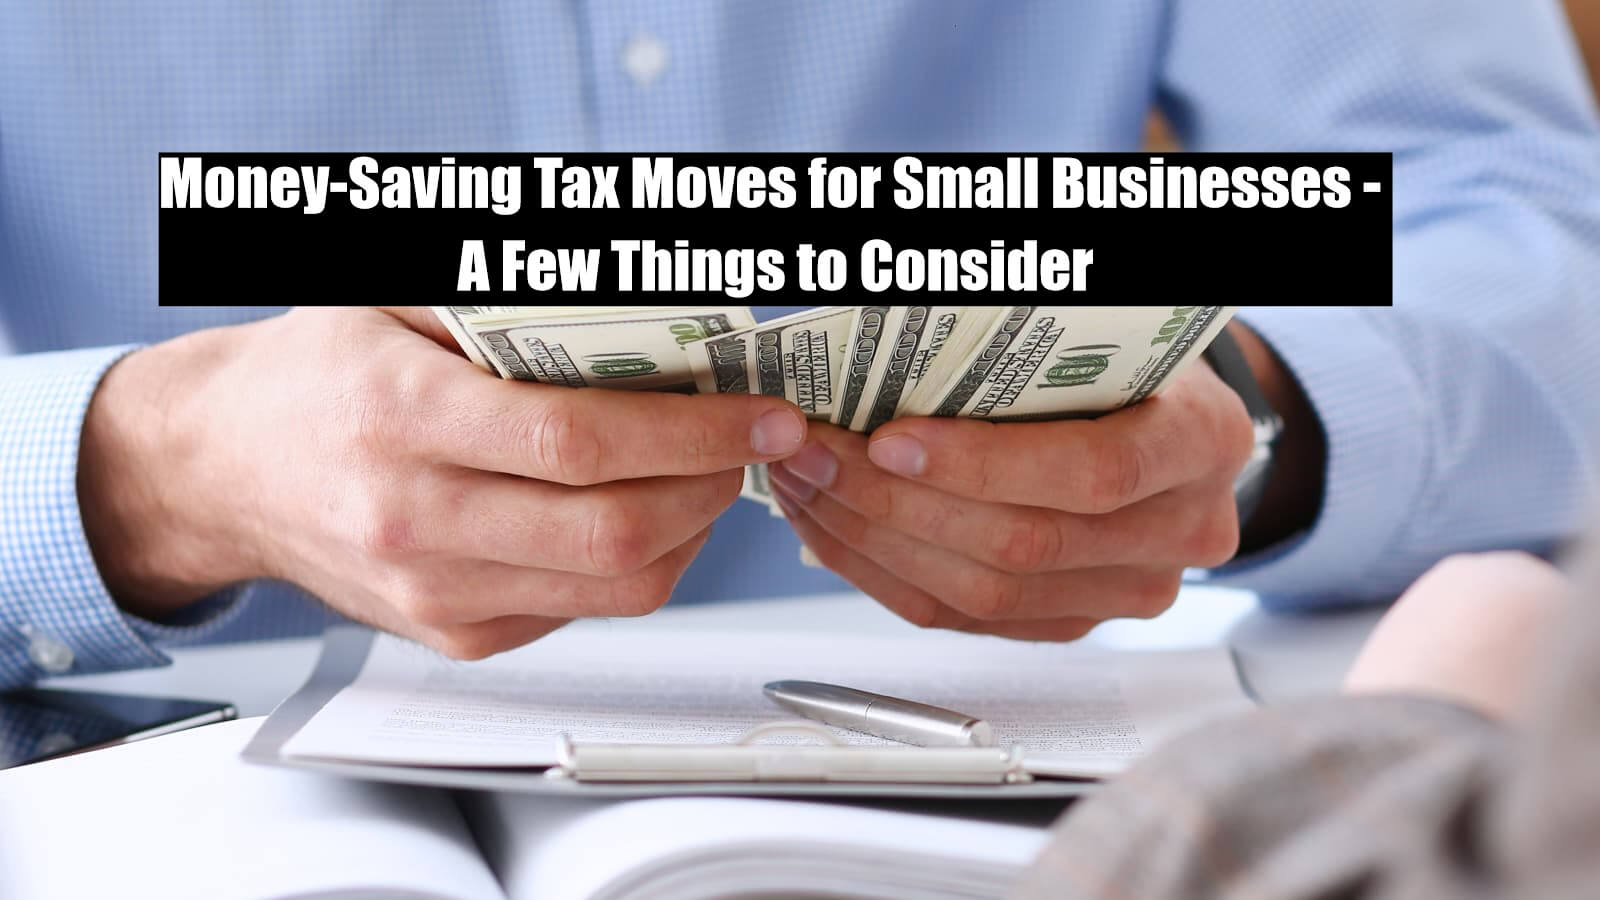 Scottsdale CPA & Accounting Firm Blog: Money-Saving Tax Moves for Small Businesses – A Few Things to Consider